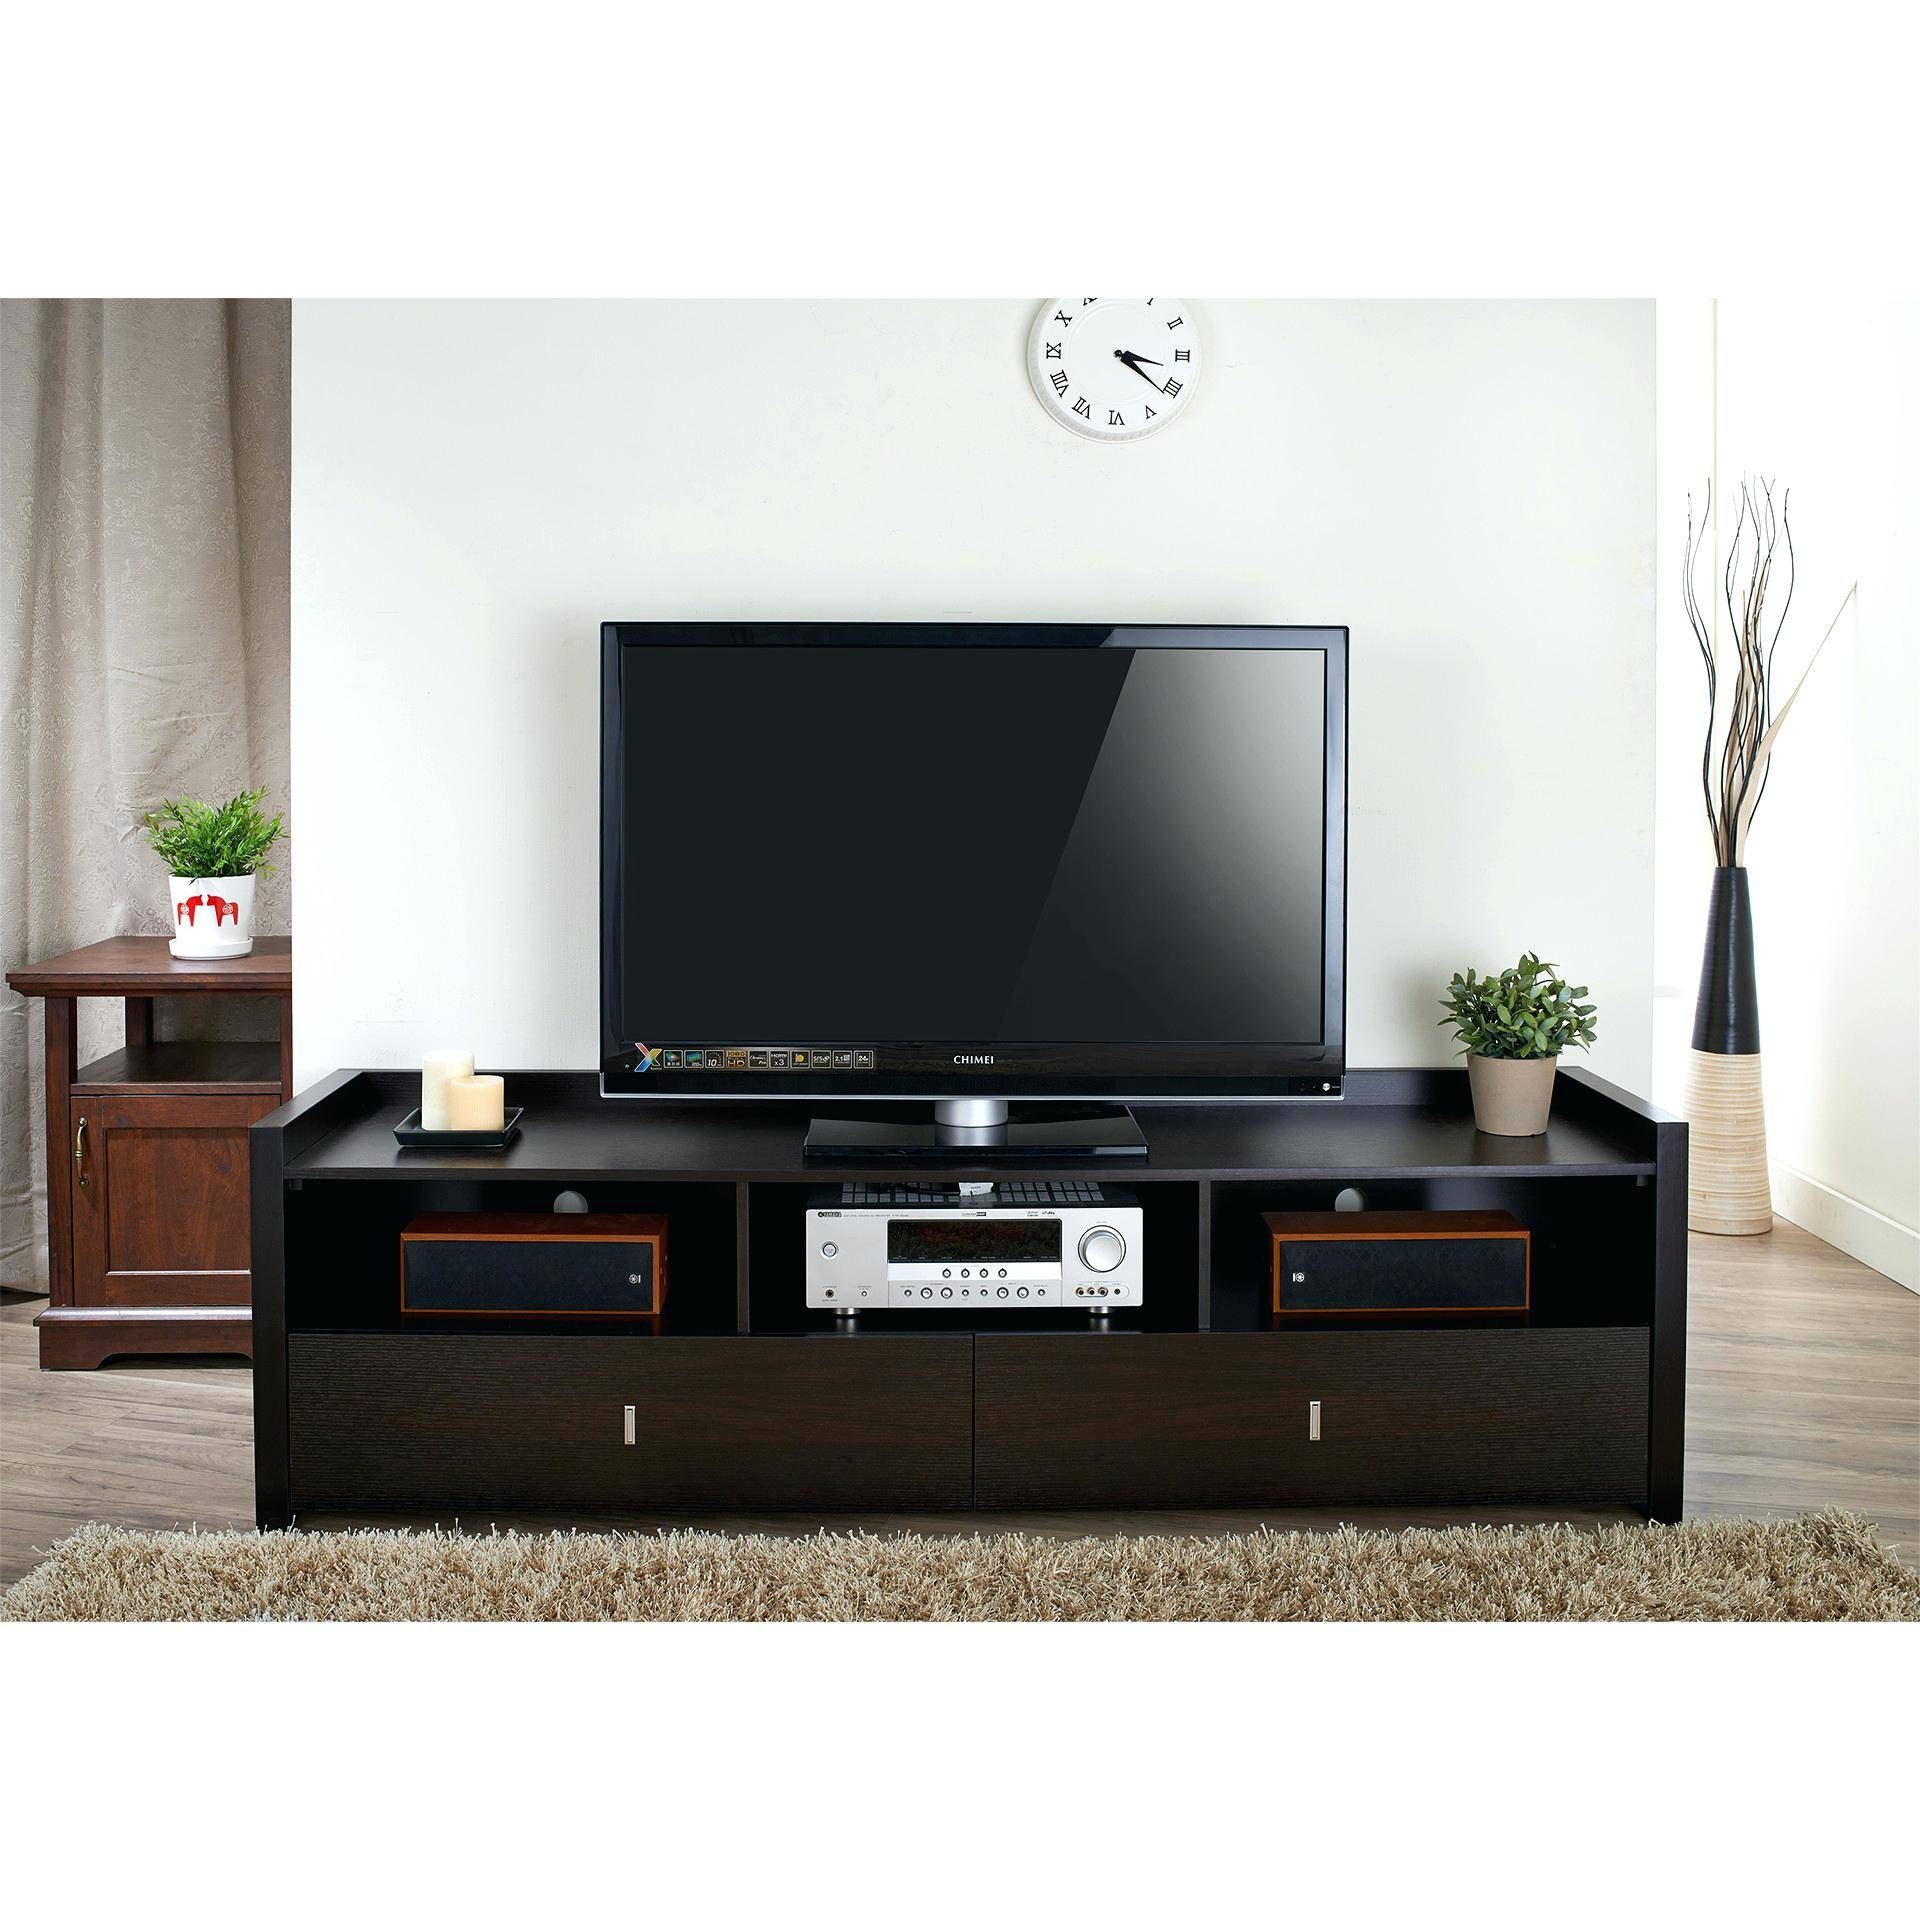 Tv Stand : Cool Brusali Tv Unit White Width 47 1 4 Depth 14 1 with Shiny Black Tv Stands (Image 11 of 15)